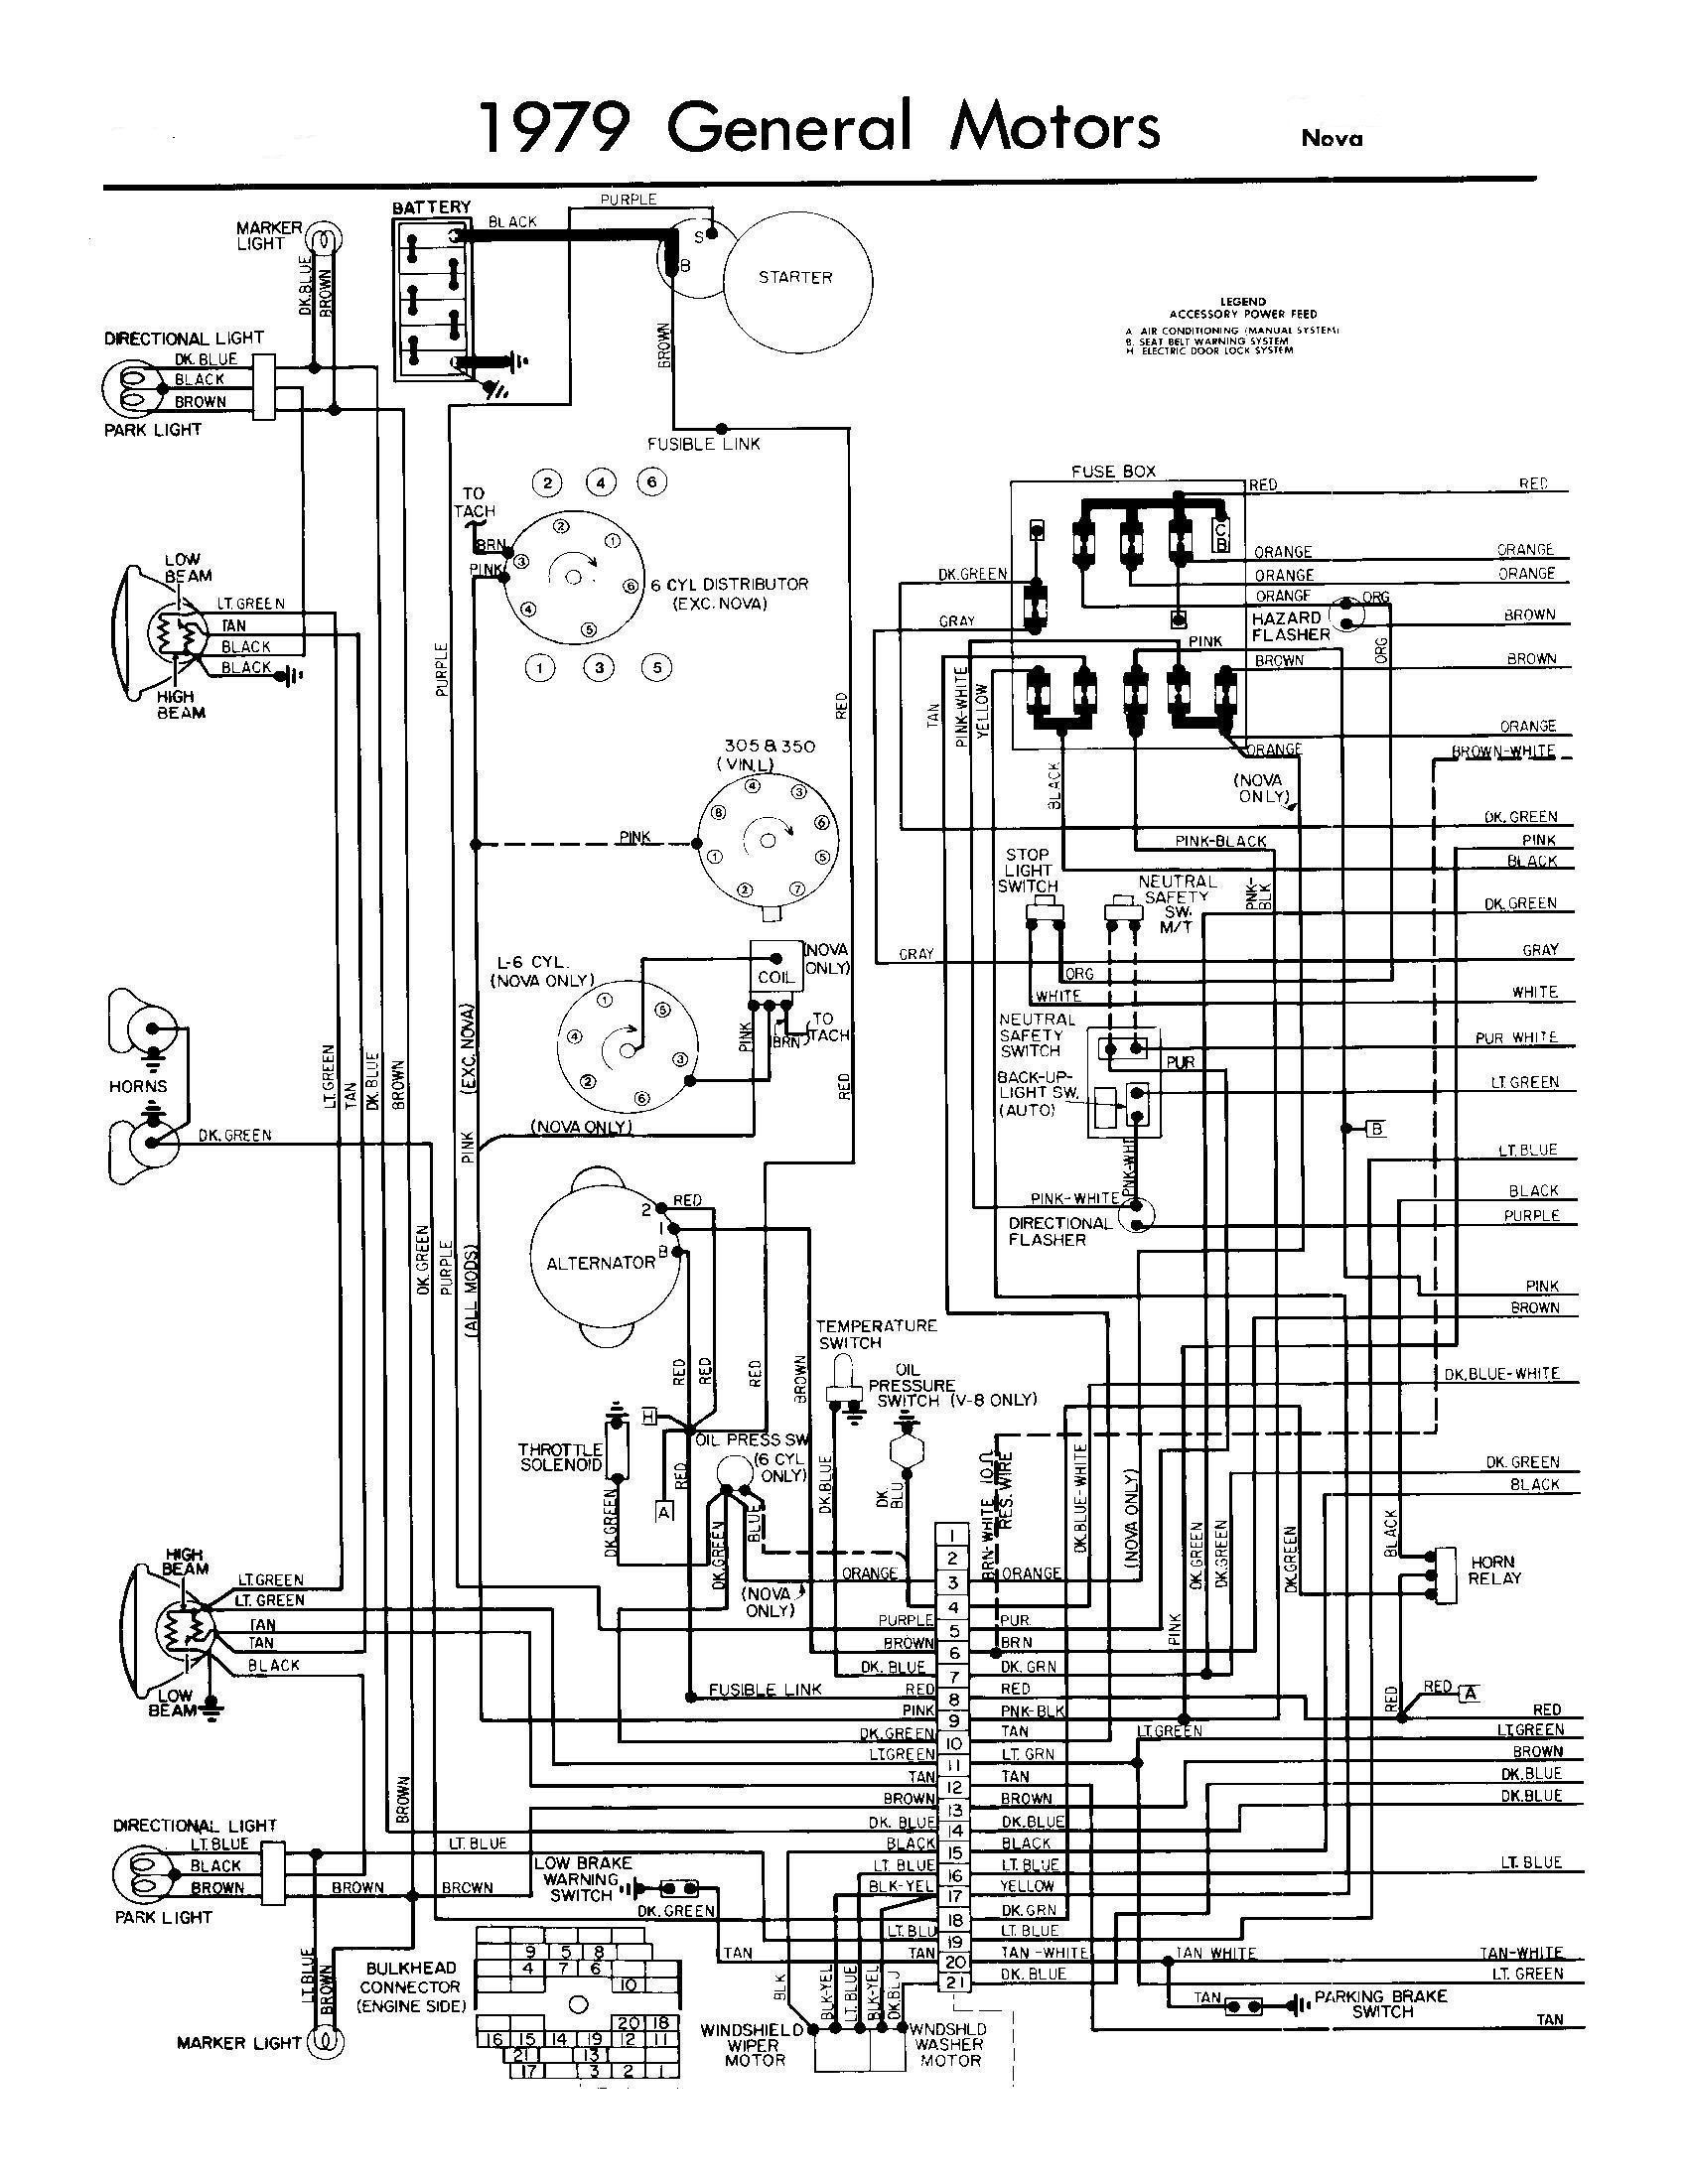 Third Gen Camaro Wiring Diagram